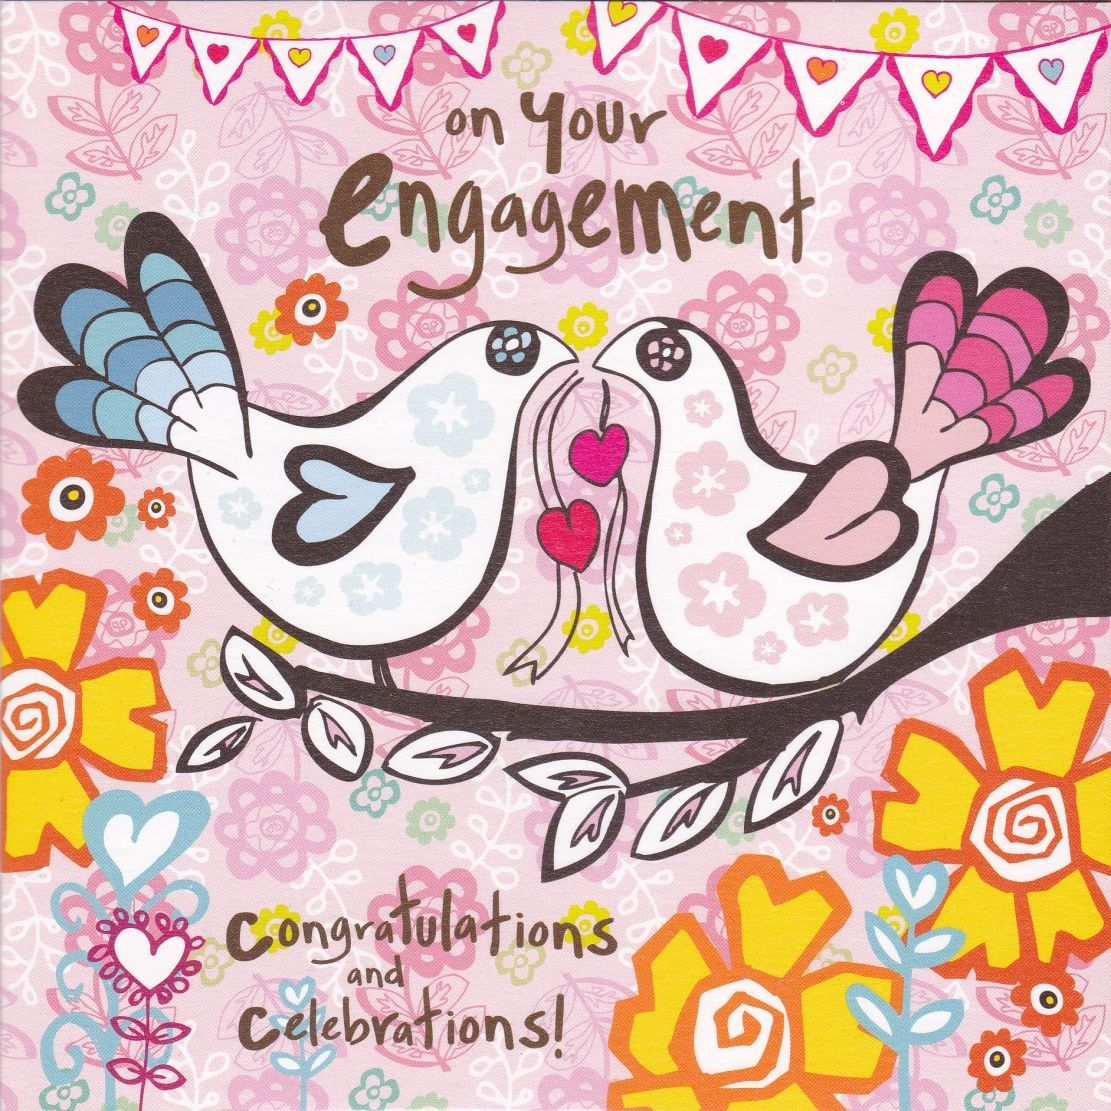 Congratulations & Celebrations On Your Engagement Card